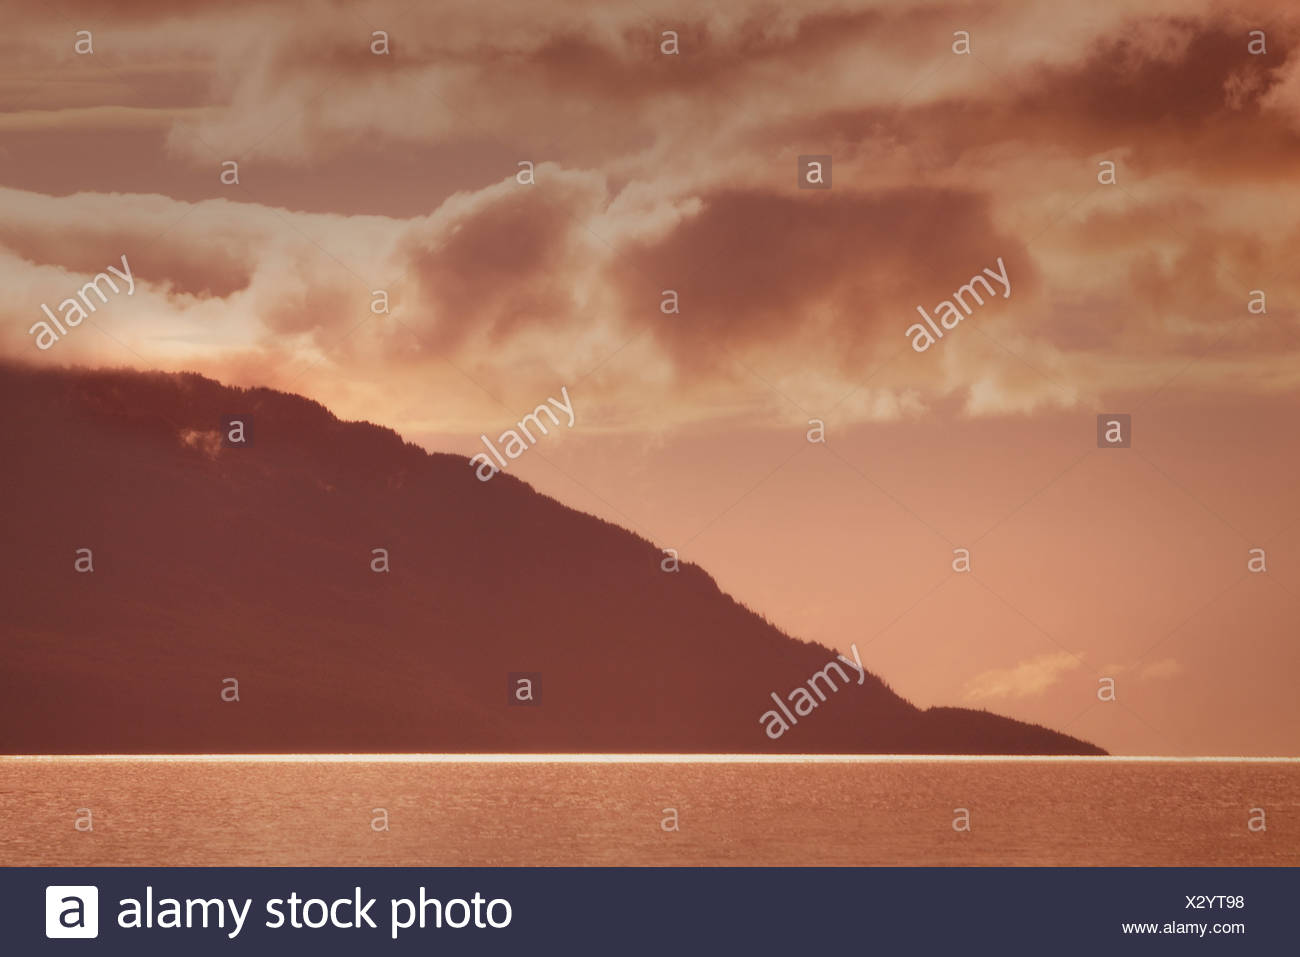 Lake and hills in neutral tones - Stock Image